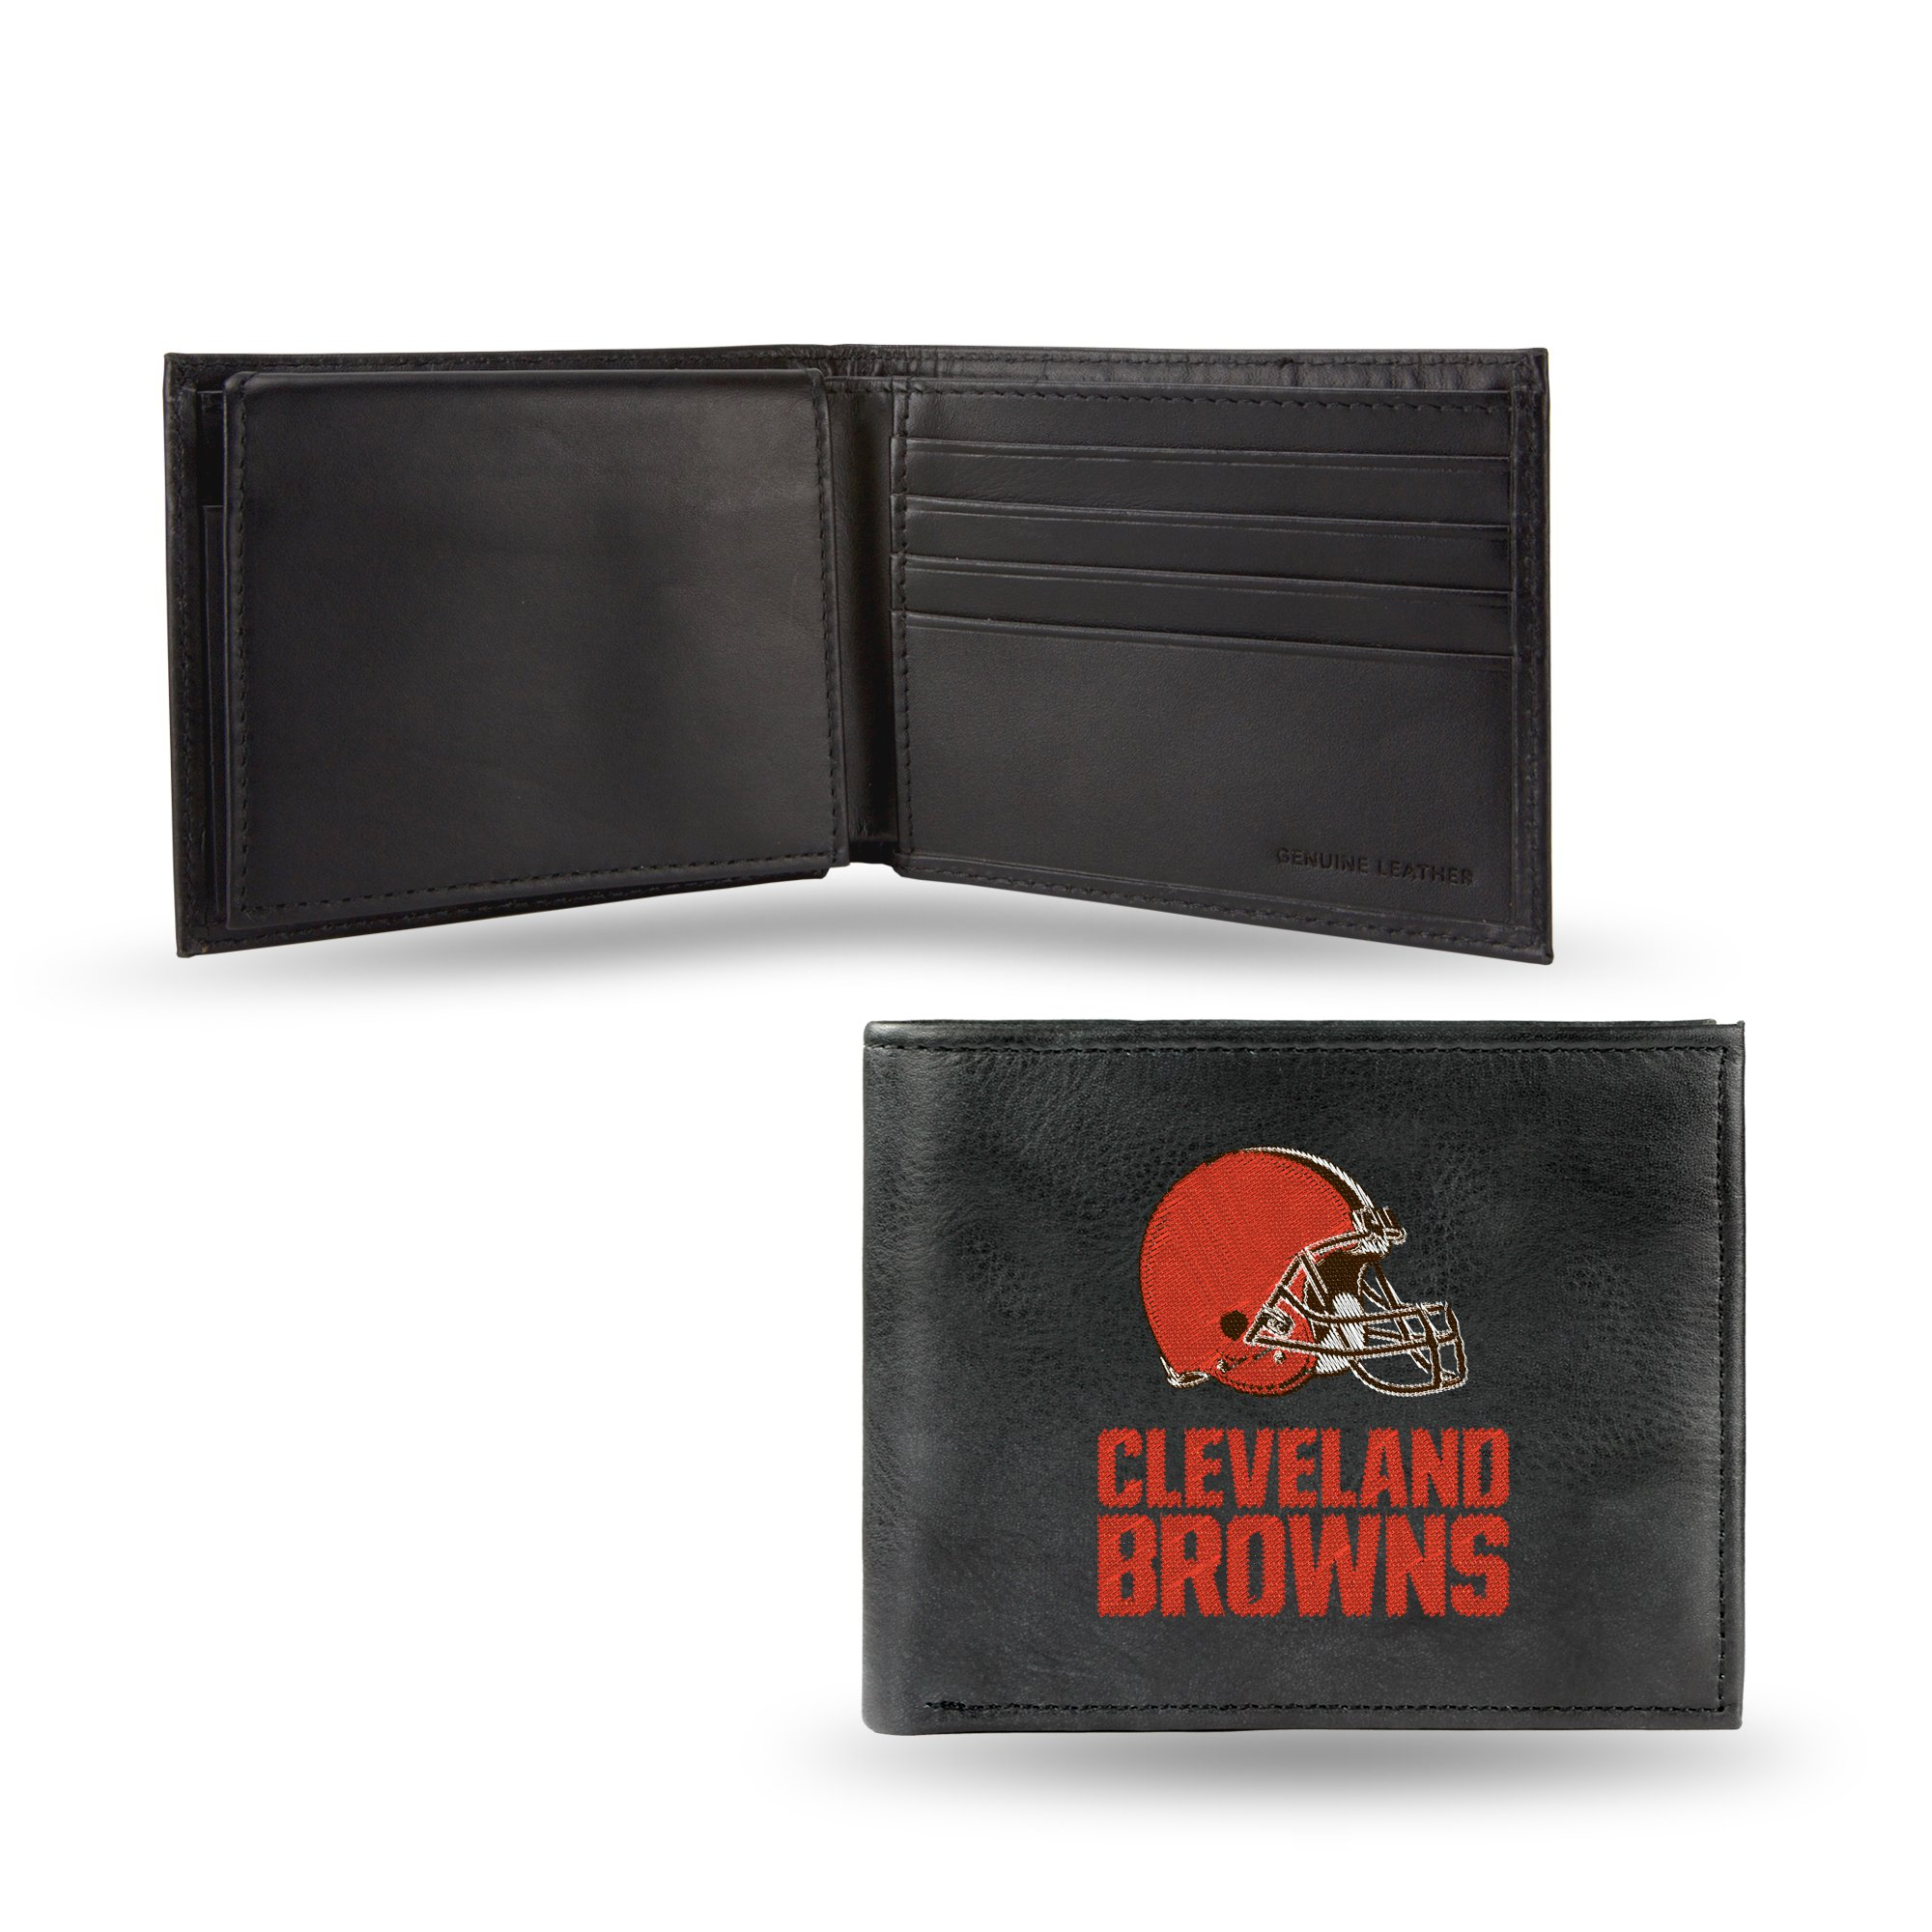 NFL Cleveland Browns Embroidered Leather Billfold Wallet